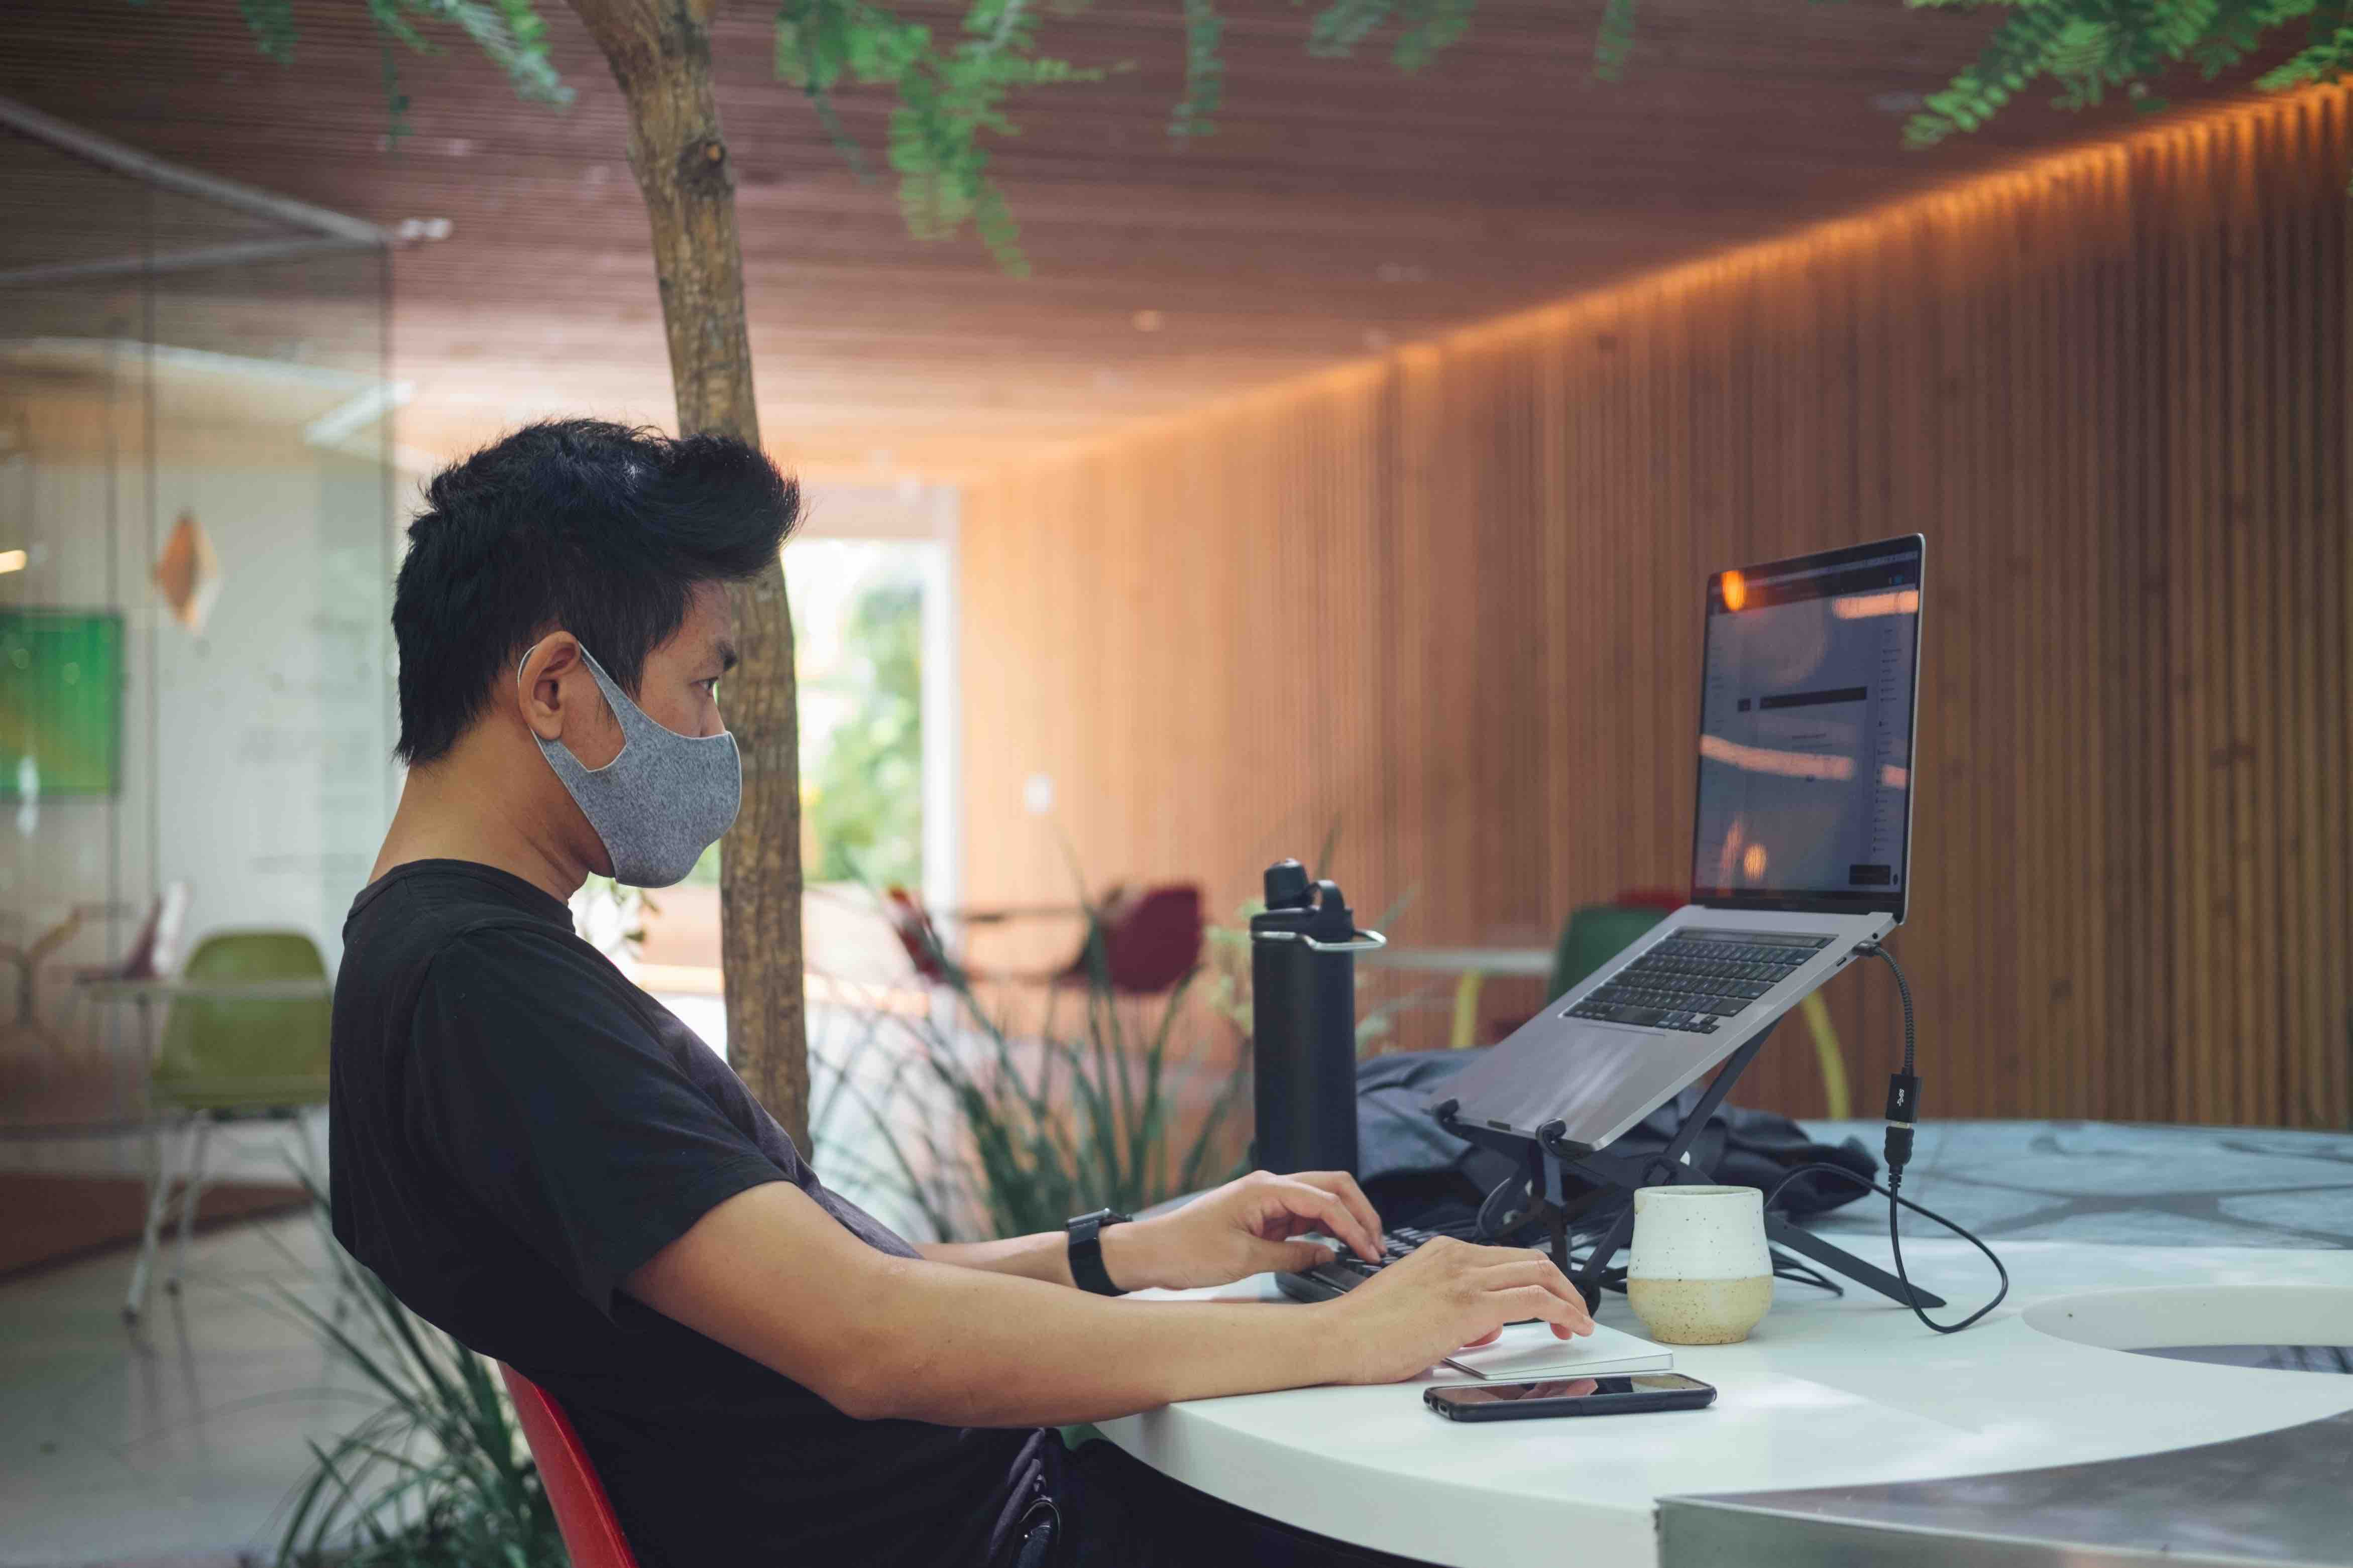 Wearing a mask during an interview